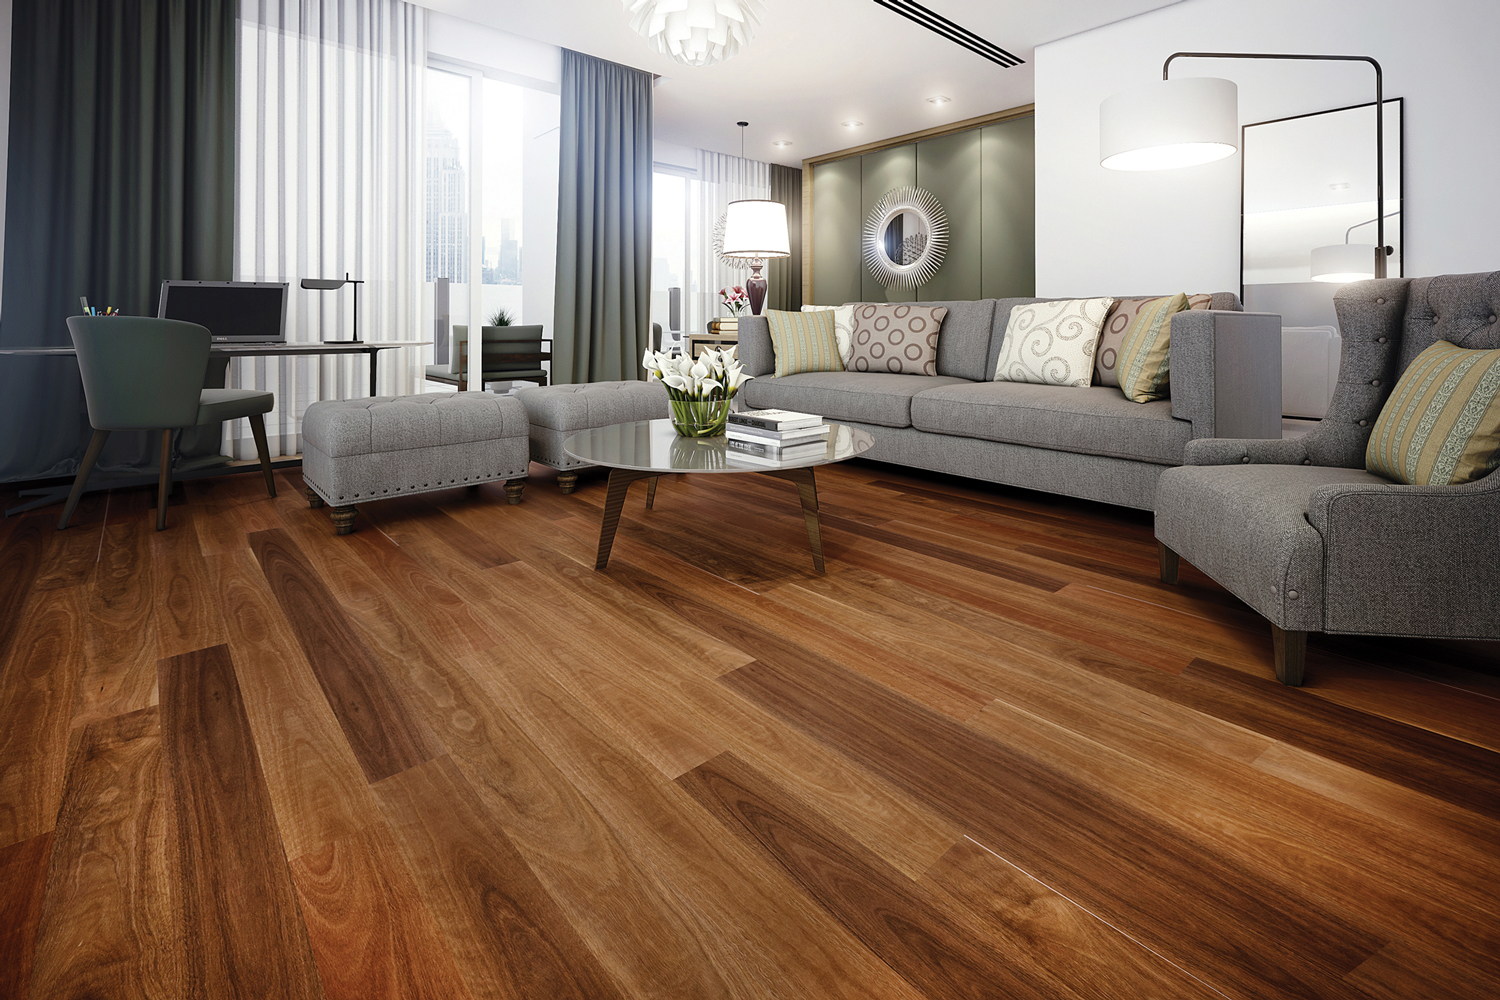 How Is Timber Flooring Useful For Your Home?